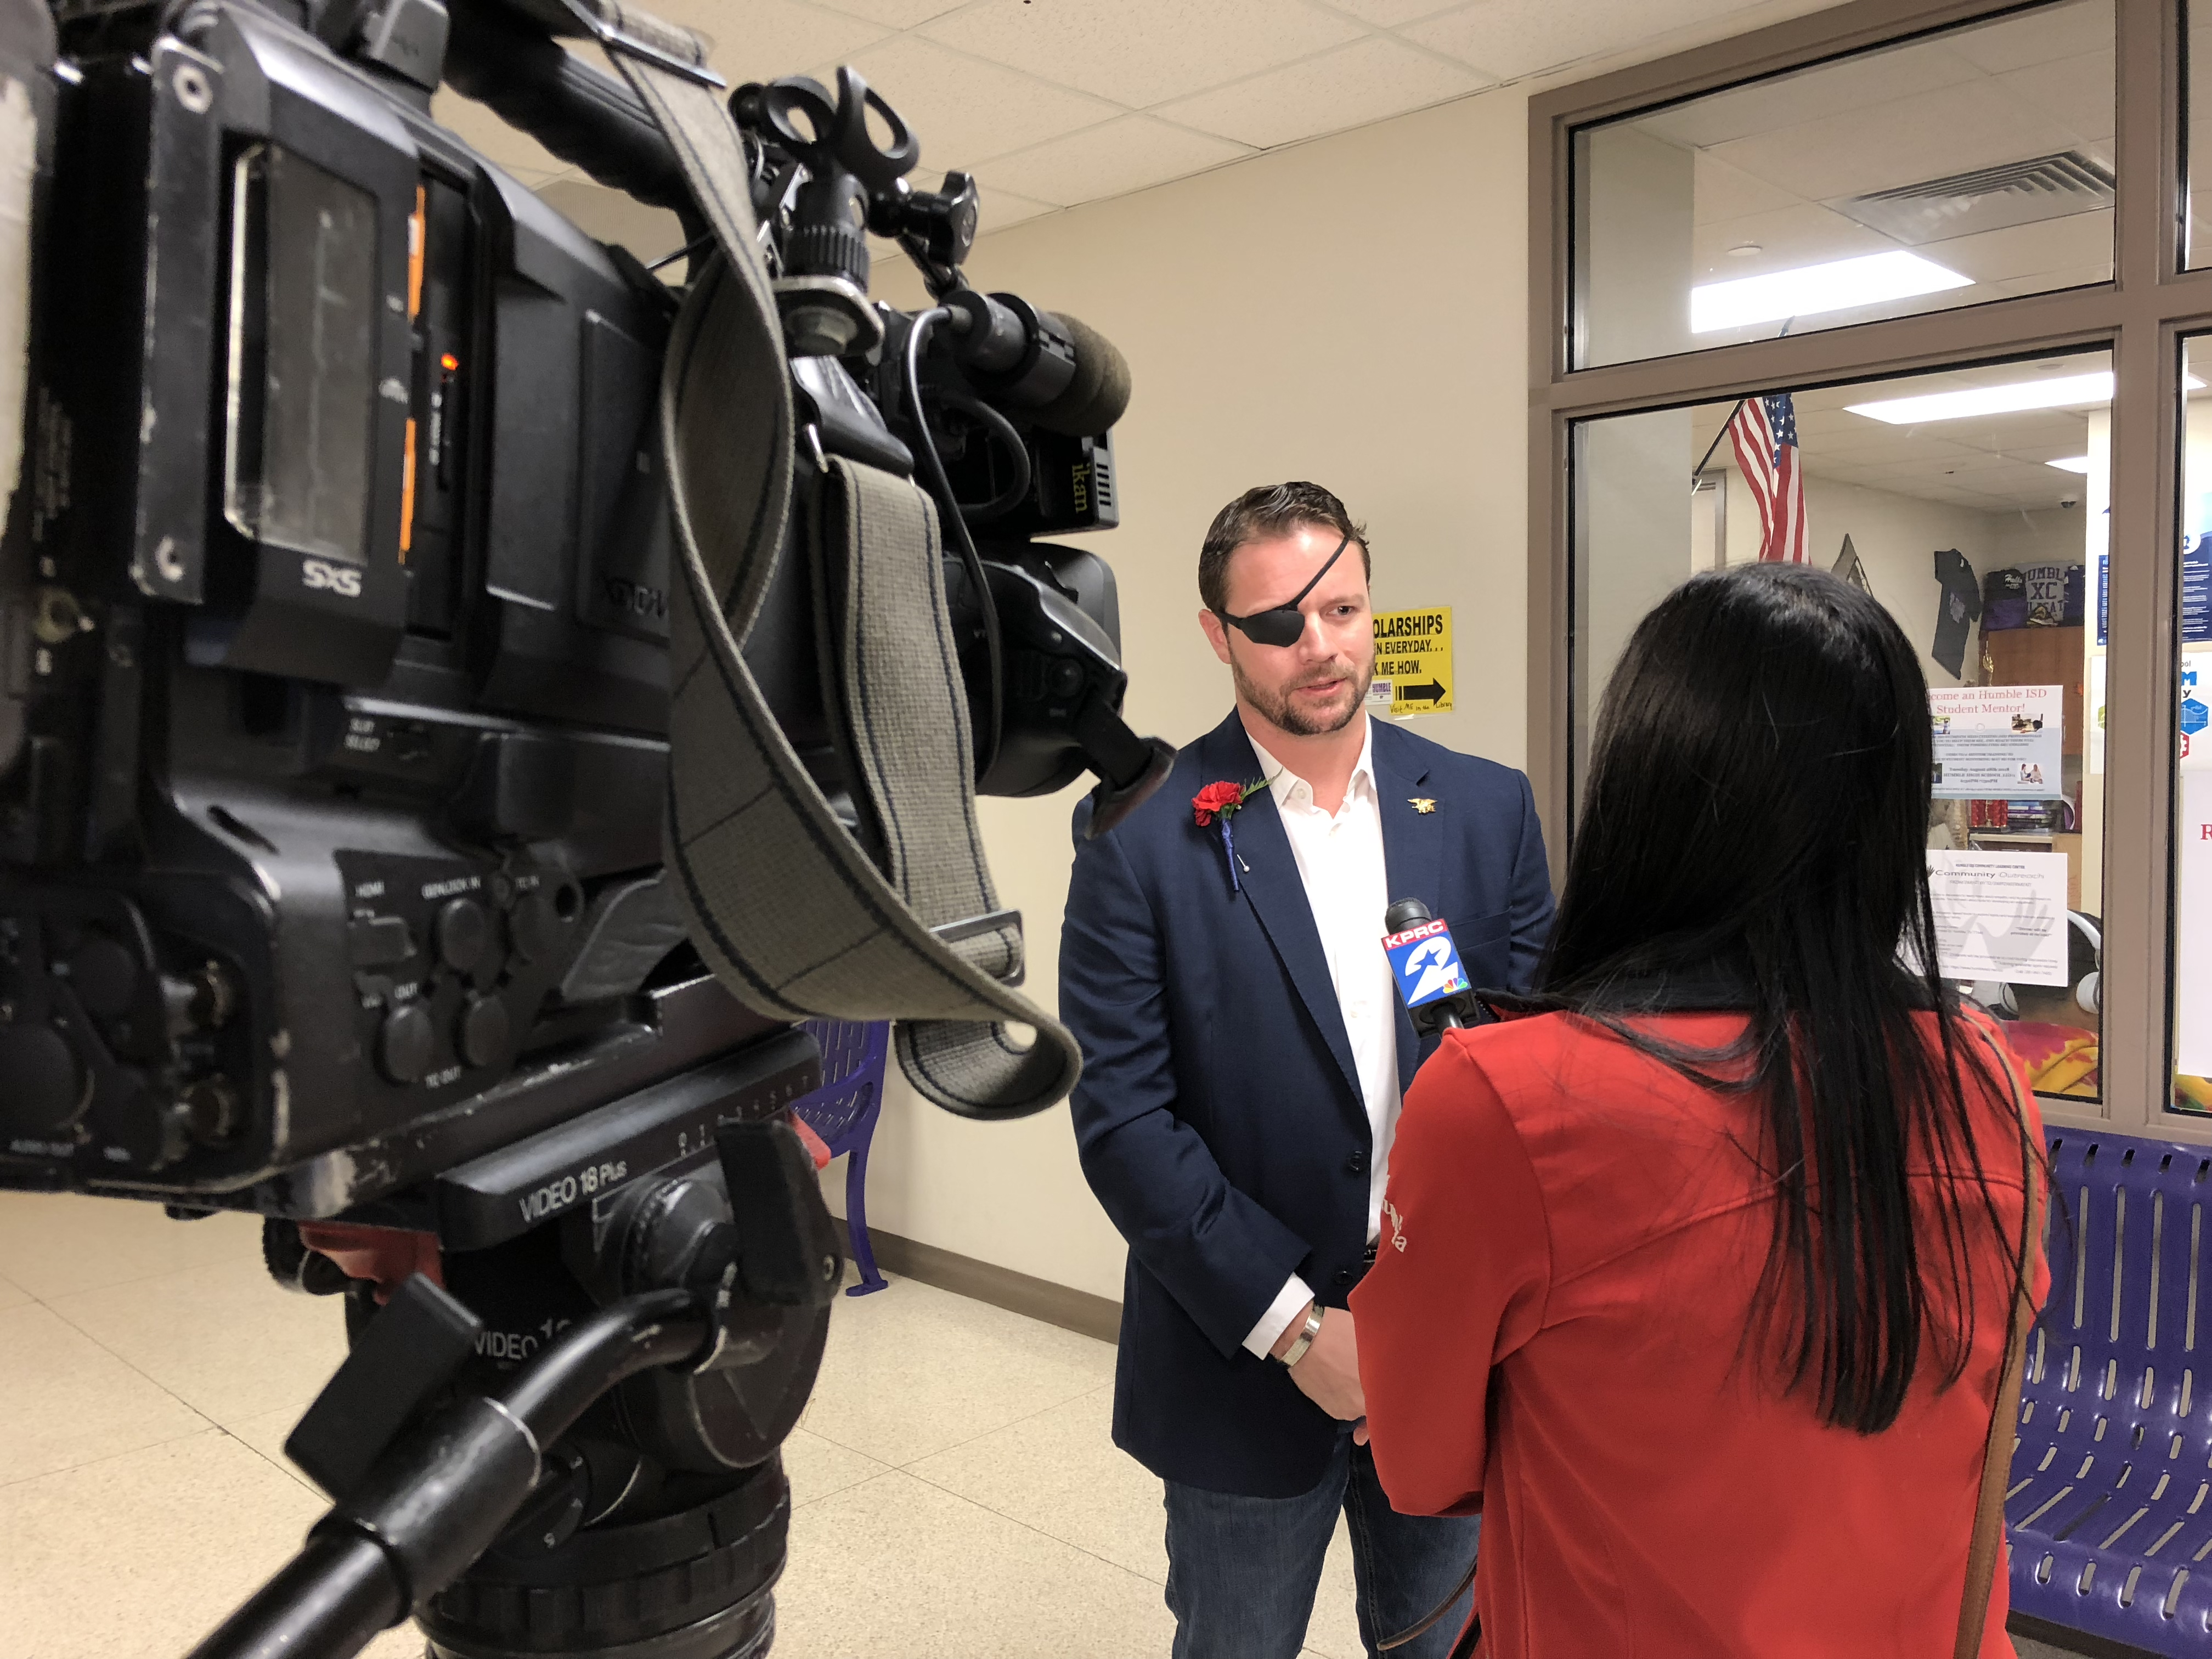 Crenshaw gives an interview to a TV reporter in Houston two days after his election night victory.